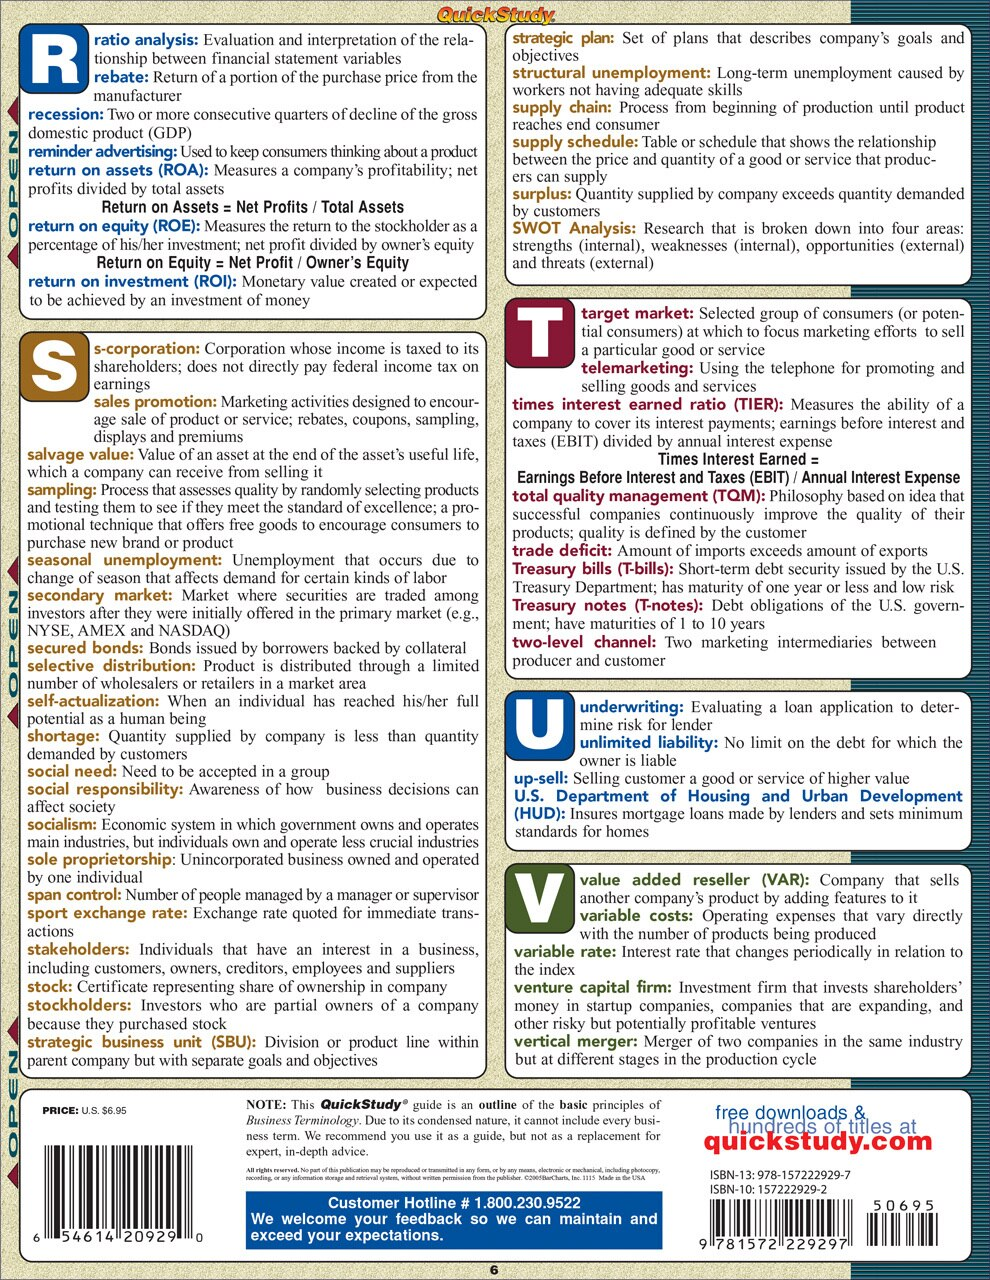 Quick Study QuickStudy Business Terminology Laminated Study Guide BarCharts Publishing Business Reference Back Image